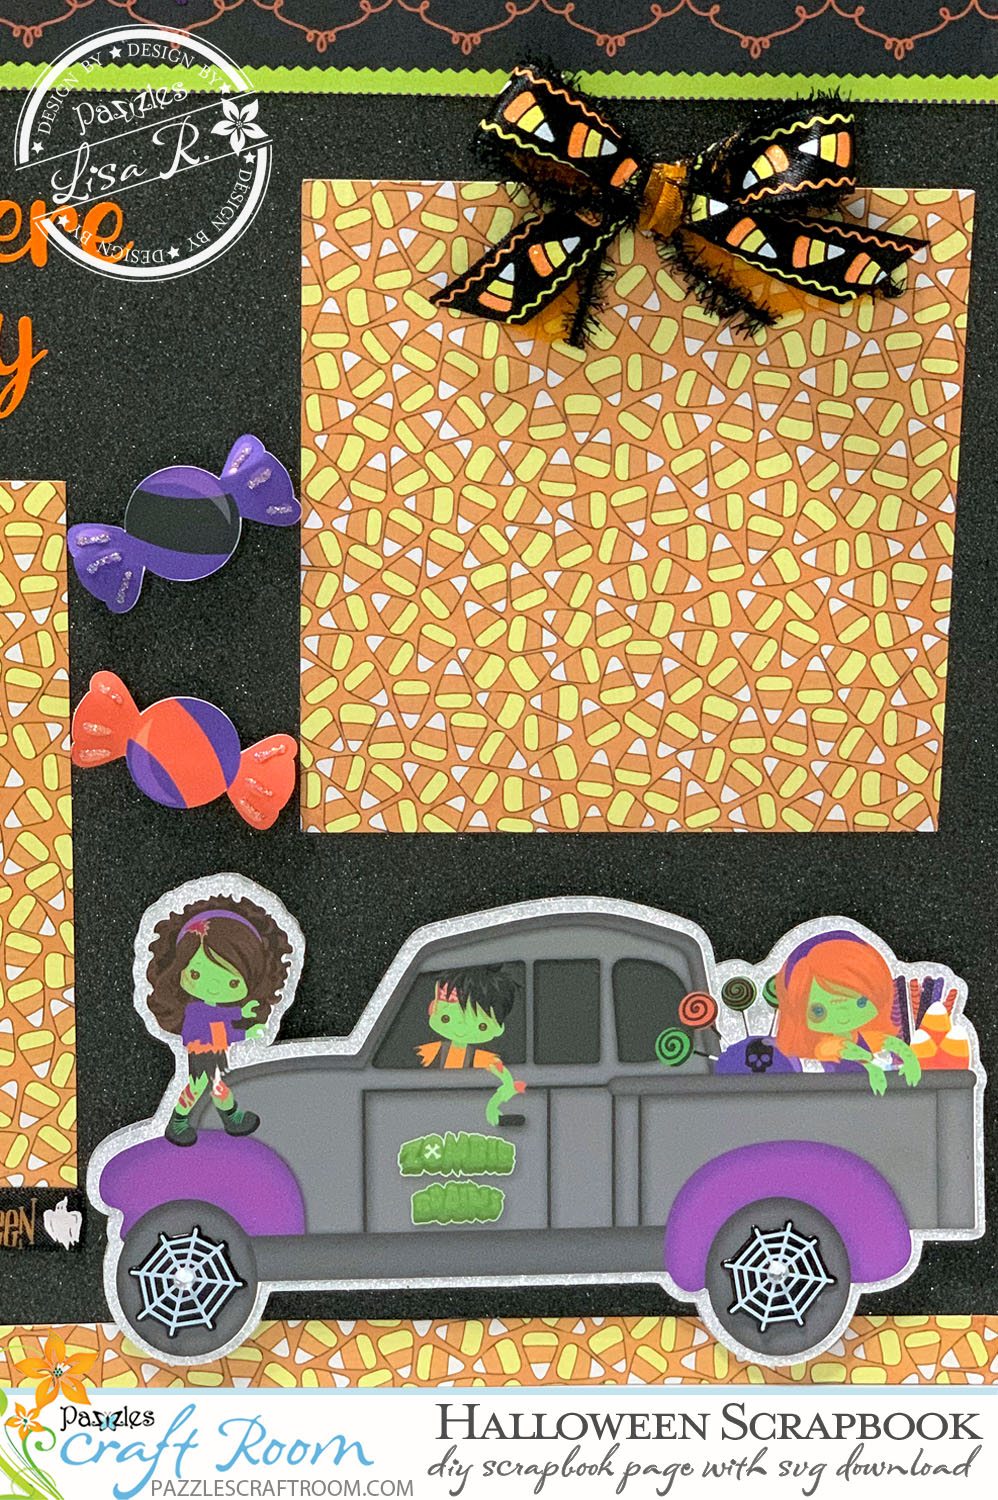 Pazzles DIY Halloween Scrapbook Page with SVG Download for Pazzles, Silhouette Cameo, and Cricut by Lisa Reyna